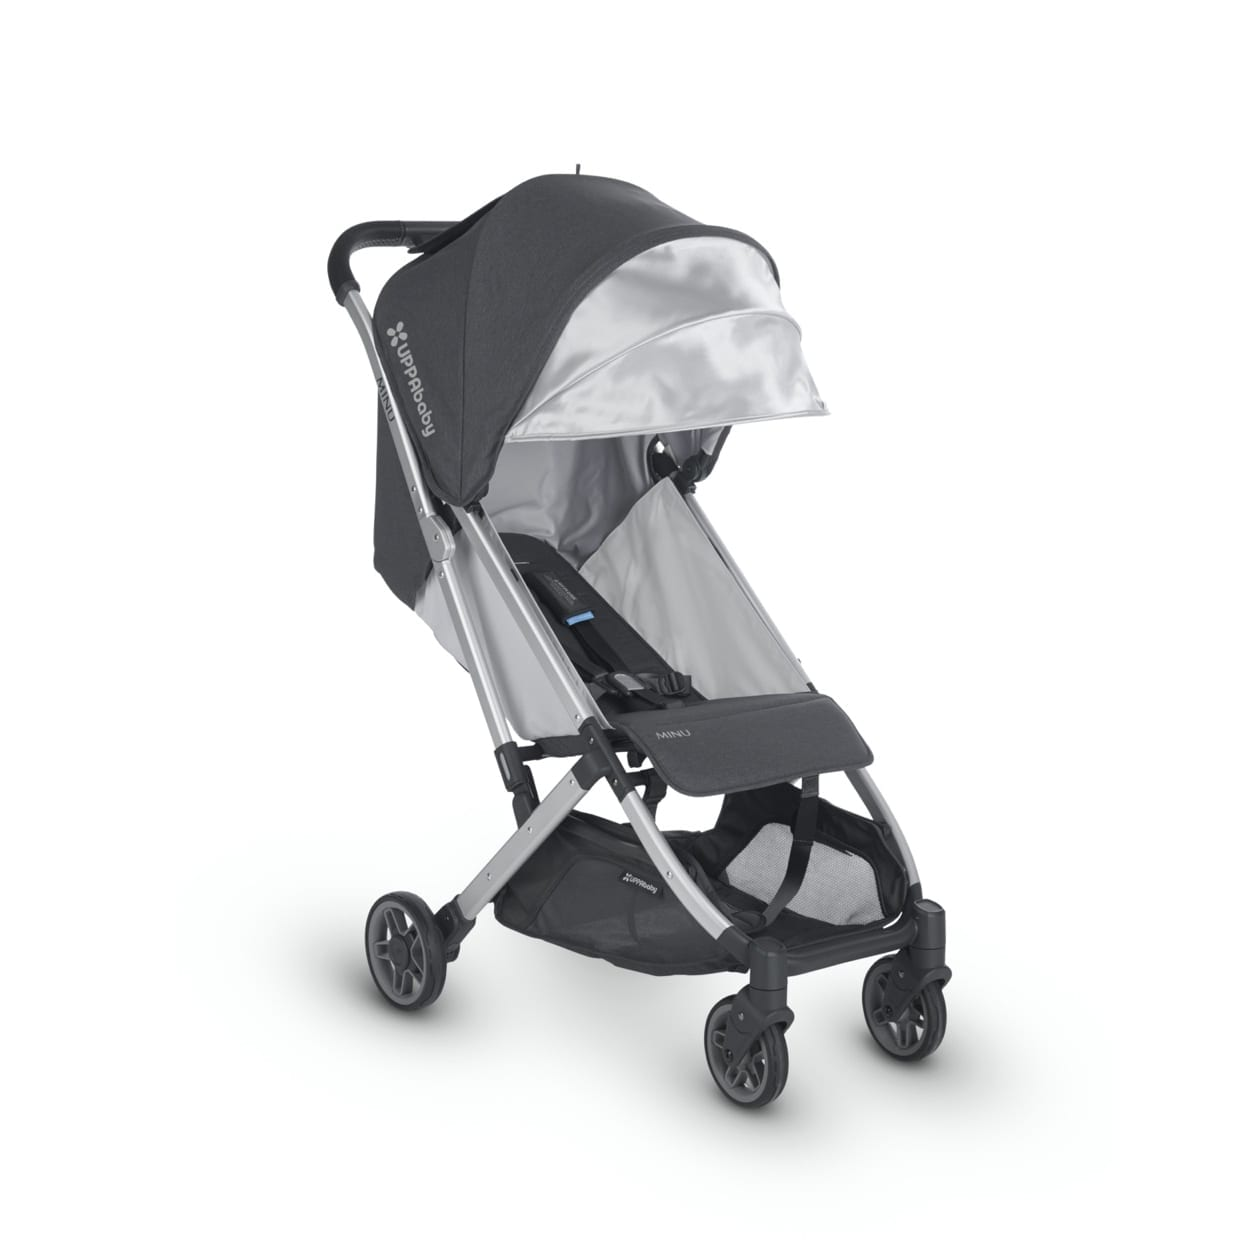 UPPABaby MINU Stroller – JORDAN product image